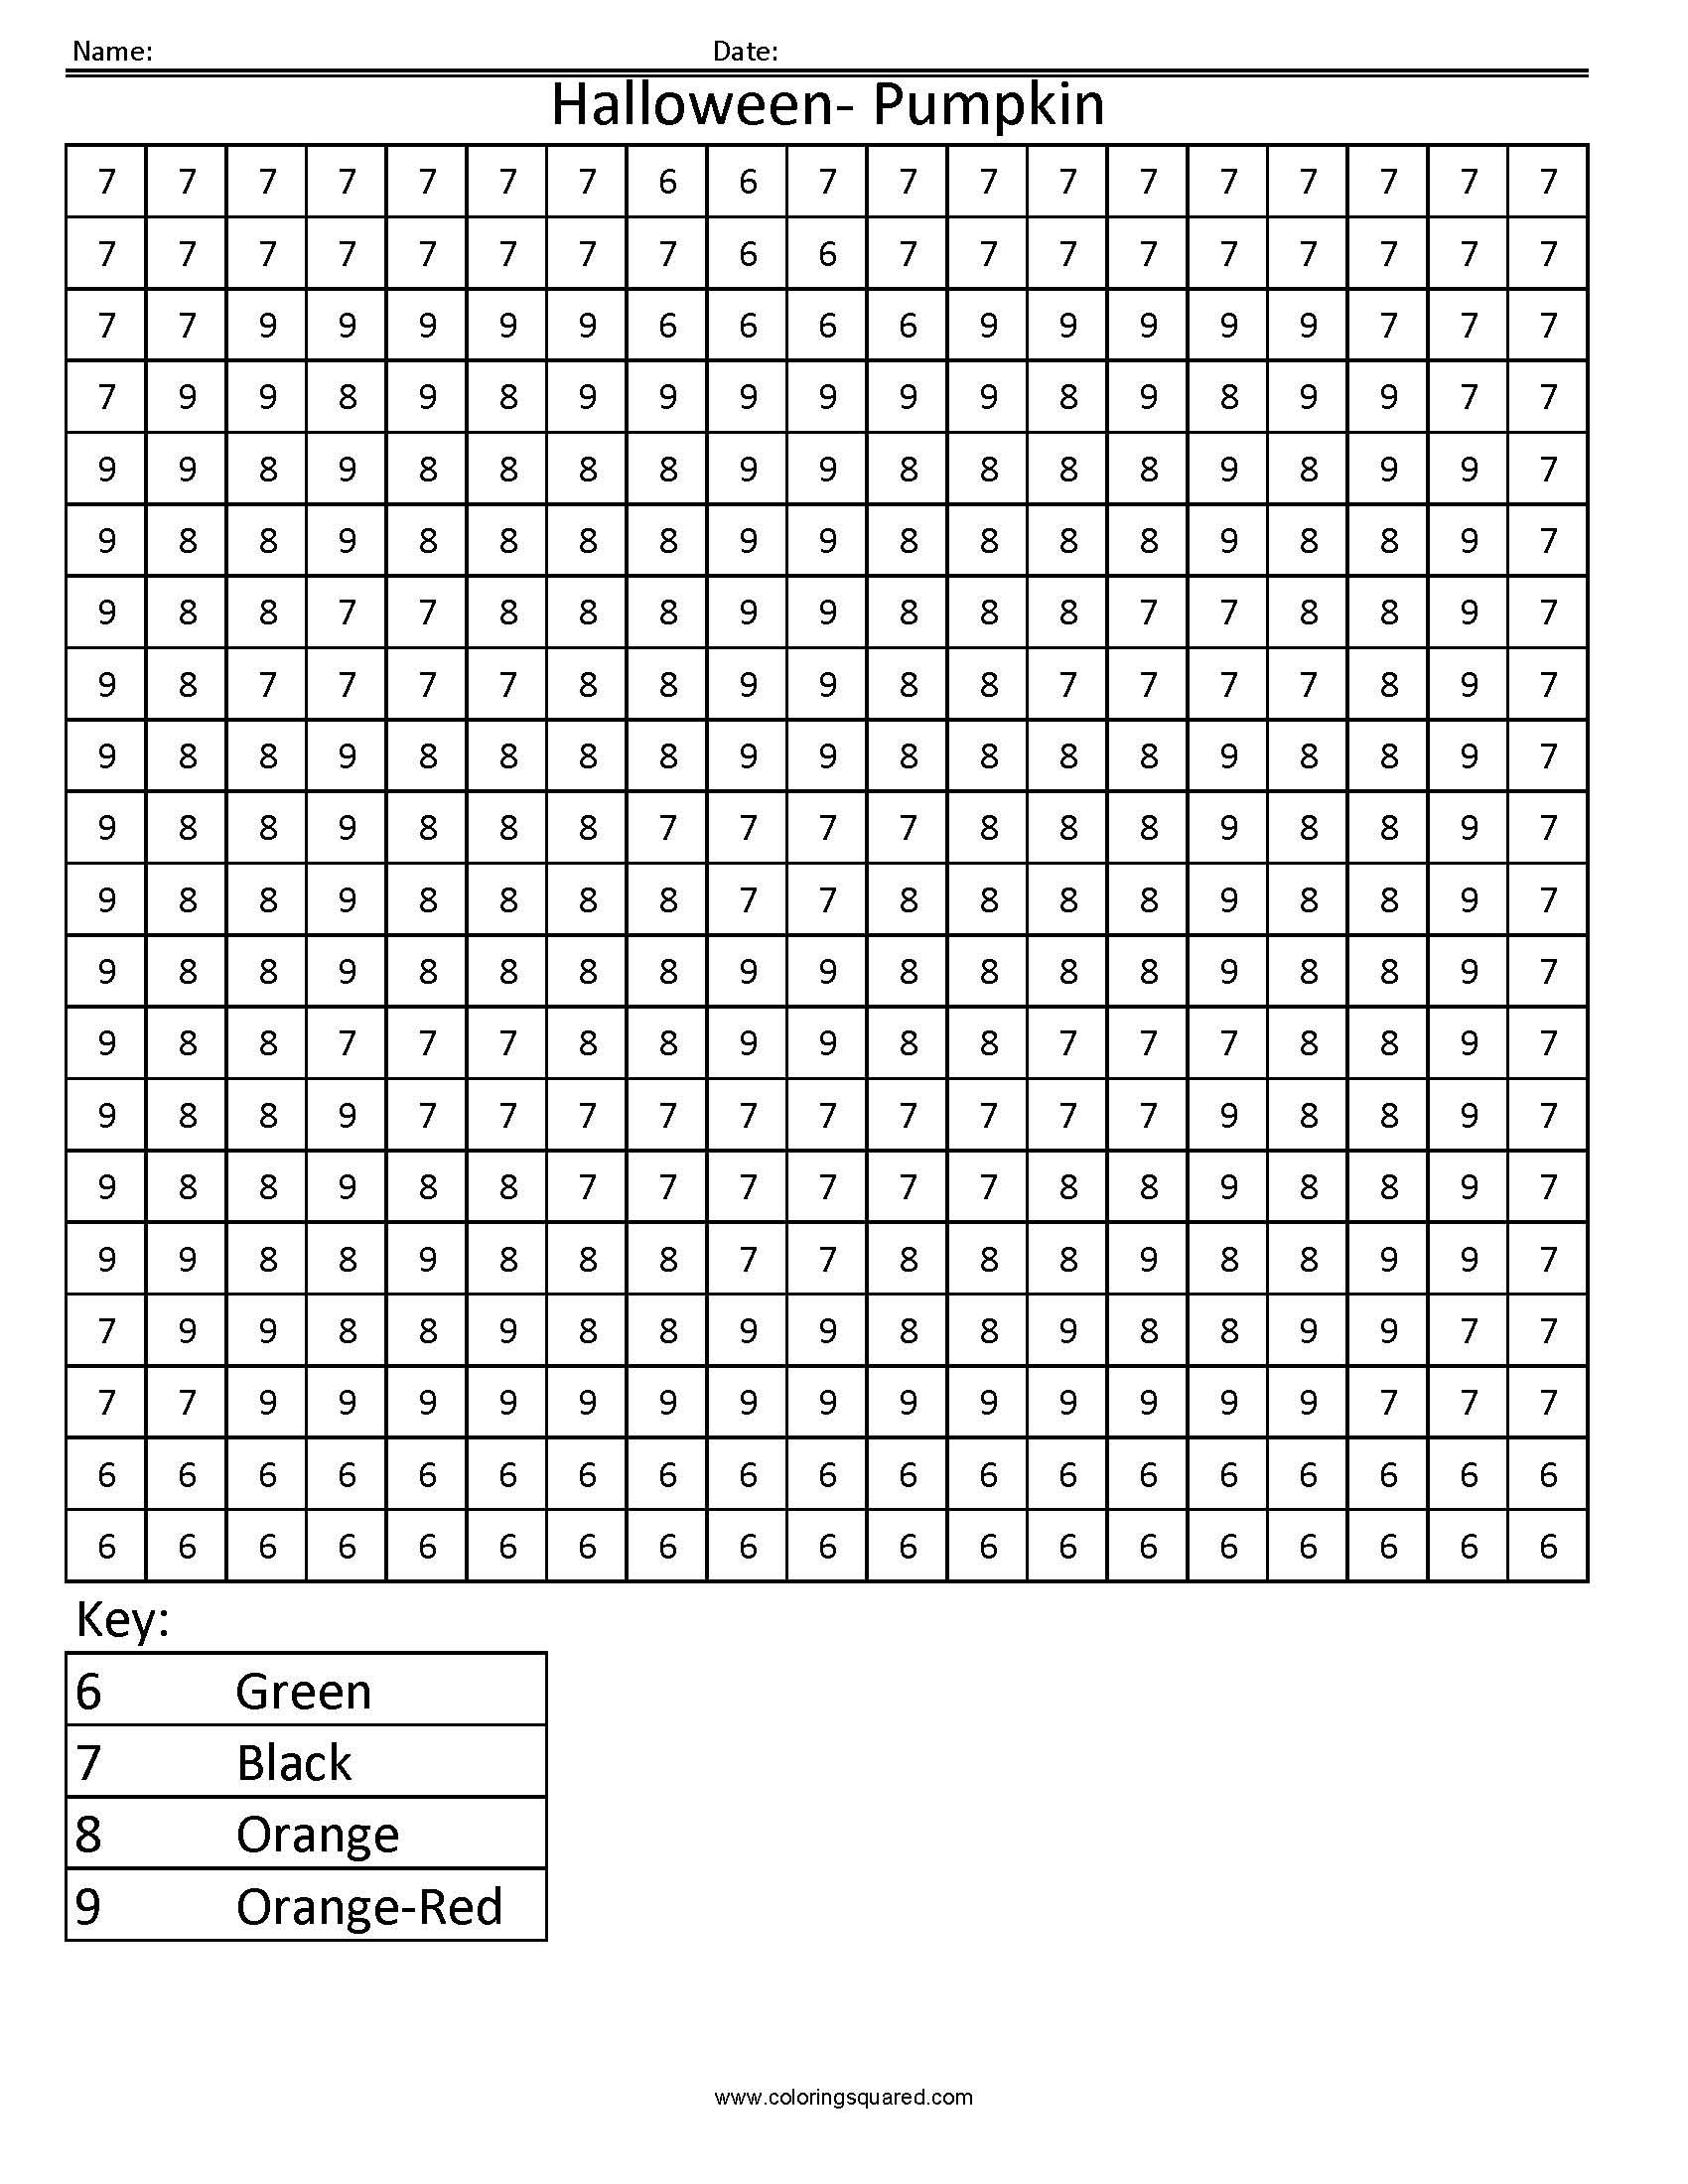 Christmas Coloring Grid Worksheets With Halloween Pumpkin Holiday Color By Number Squared